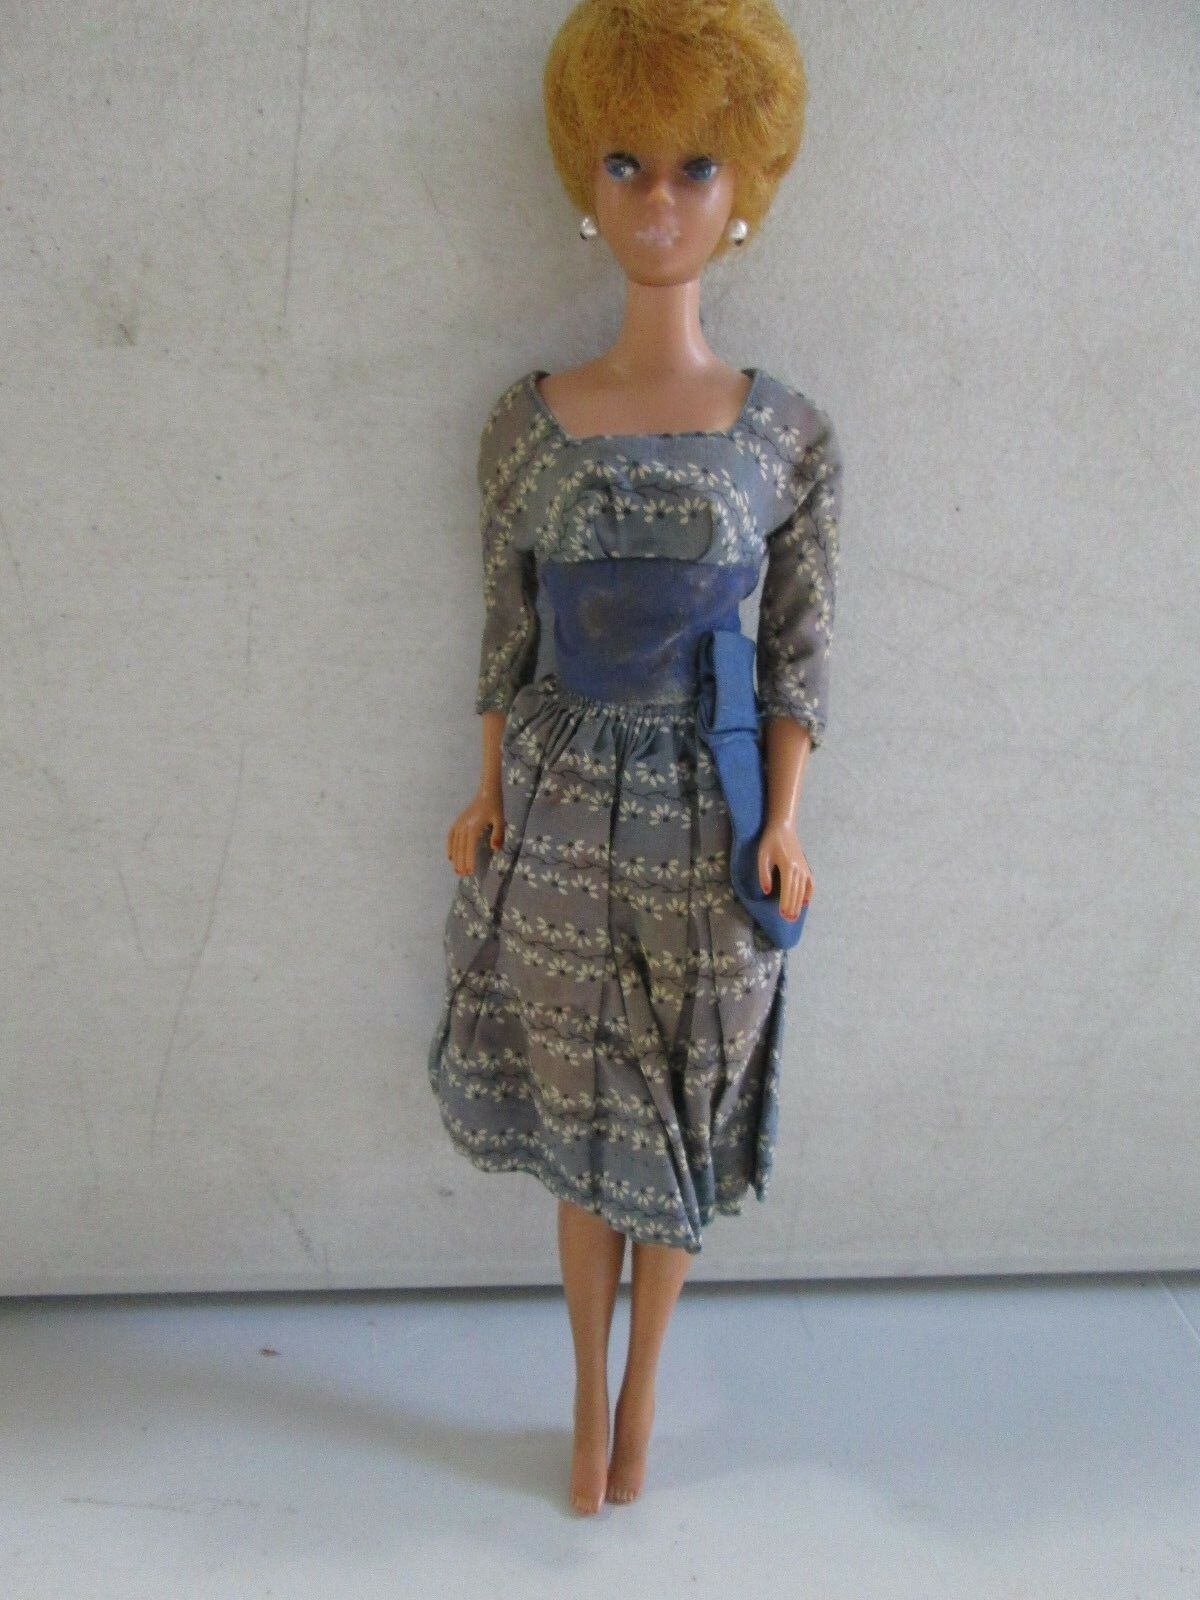 1961 Barbie Bubblecut con gafas de sol